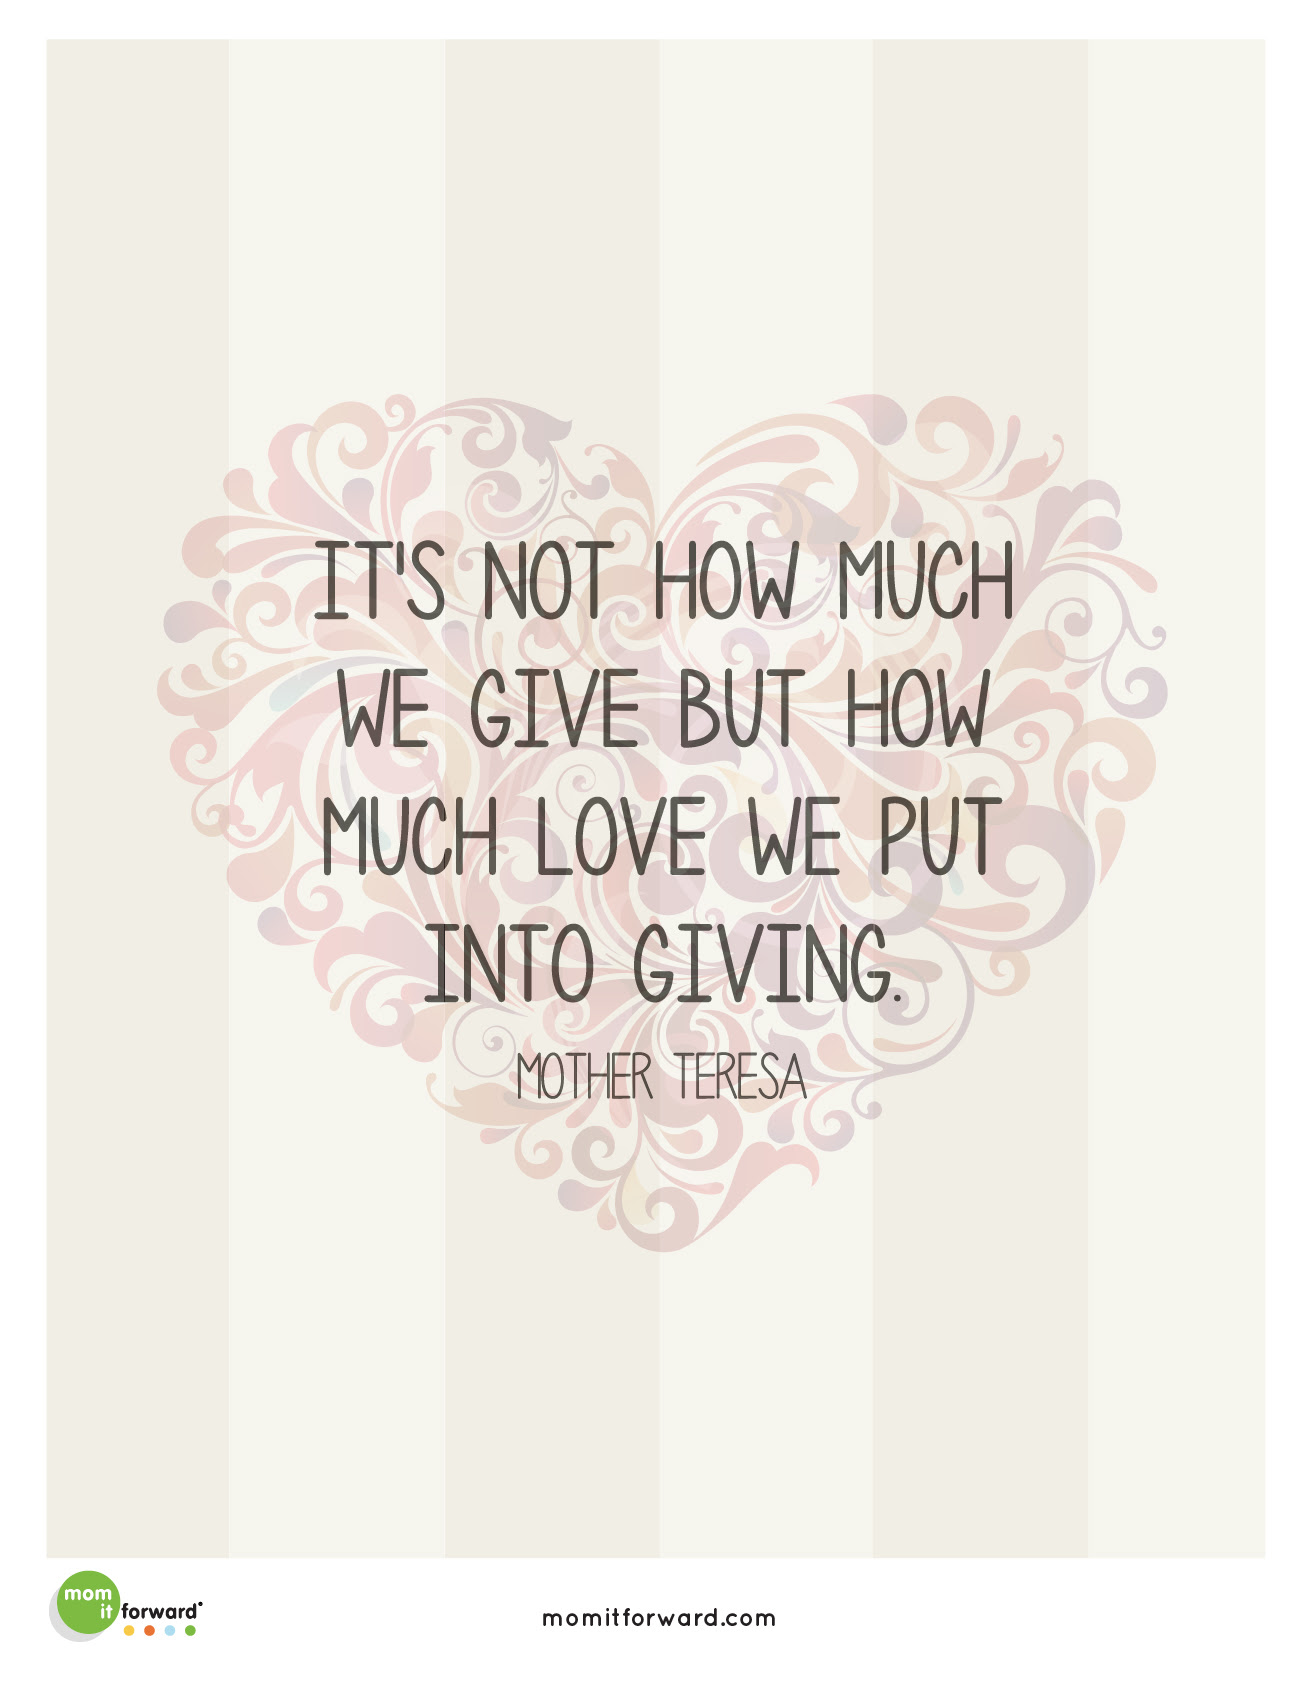 ebook2 p2 GivingQuote v3